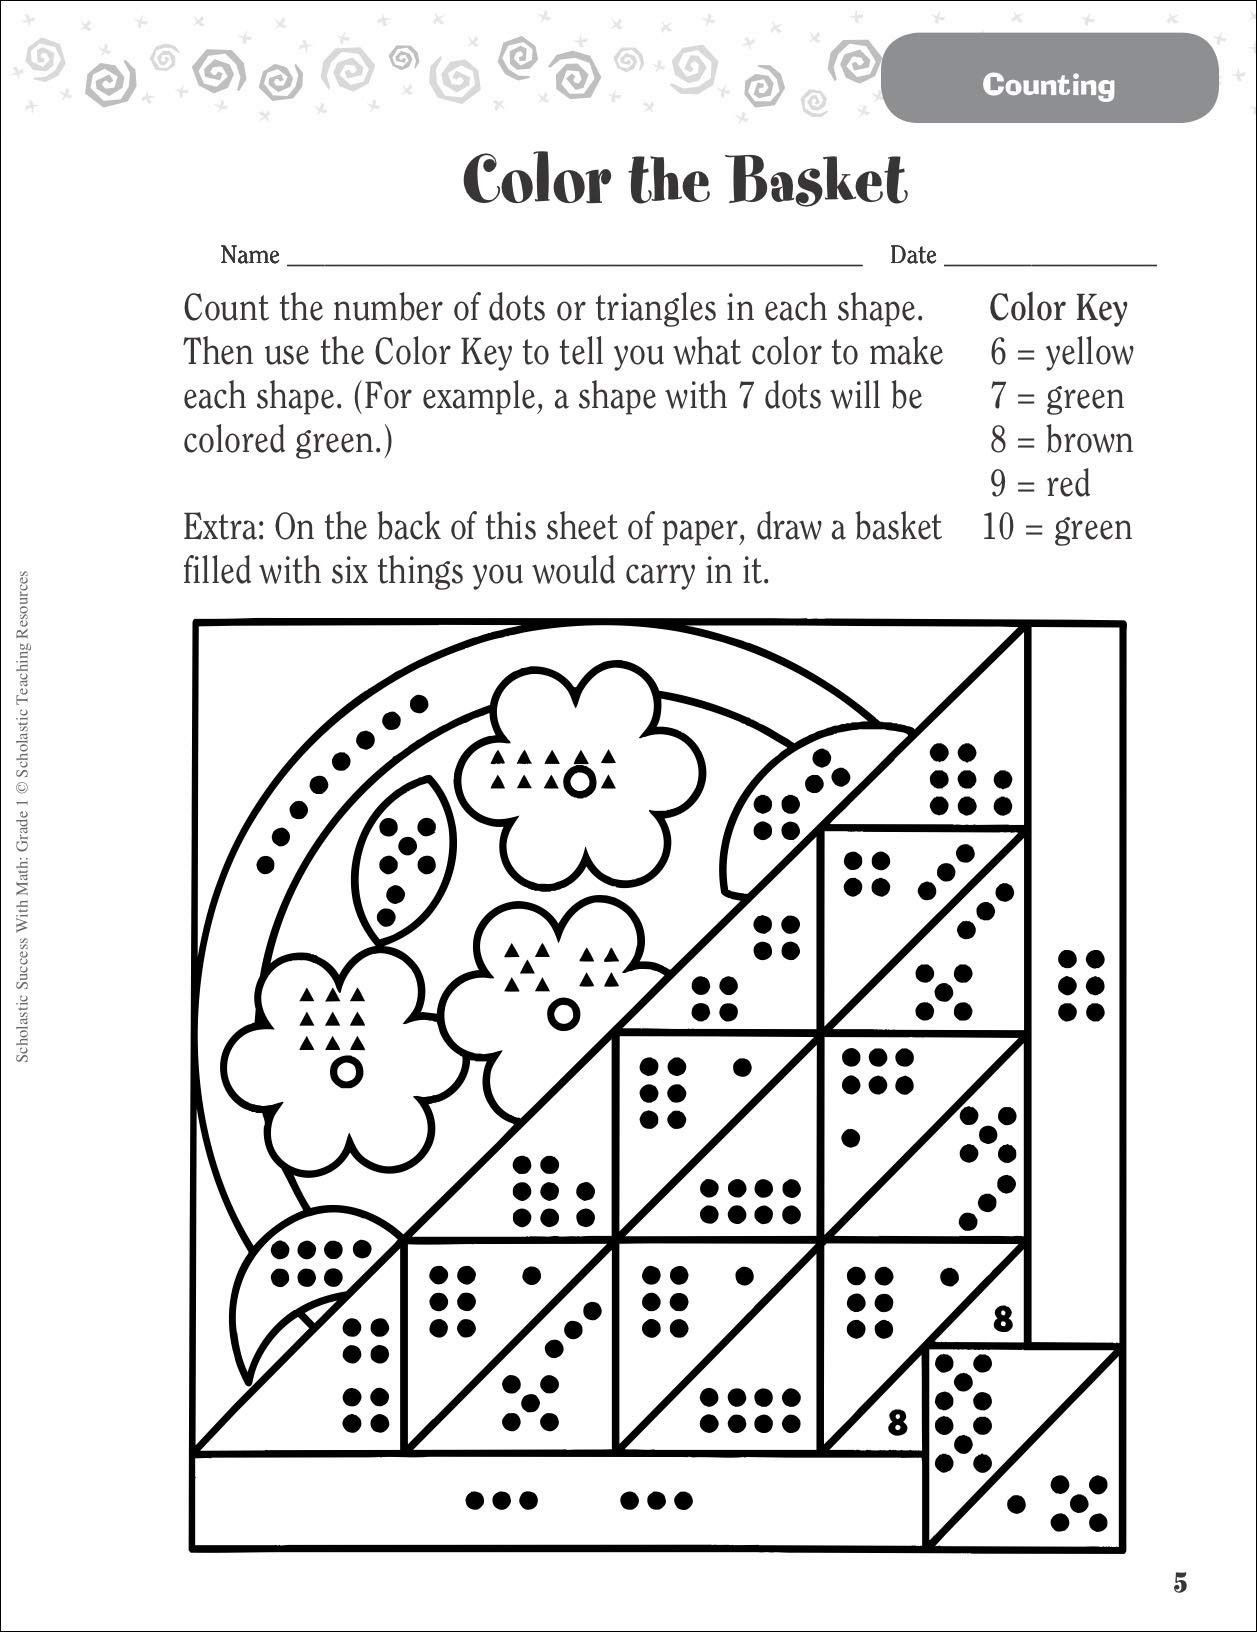 Homophones Worksheets 2nd Grade Math Word Problems Year 4 Free Math Worksheets for Grade 5